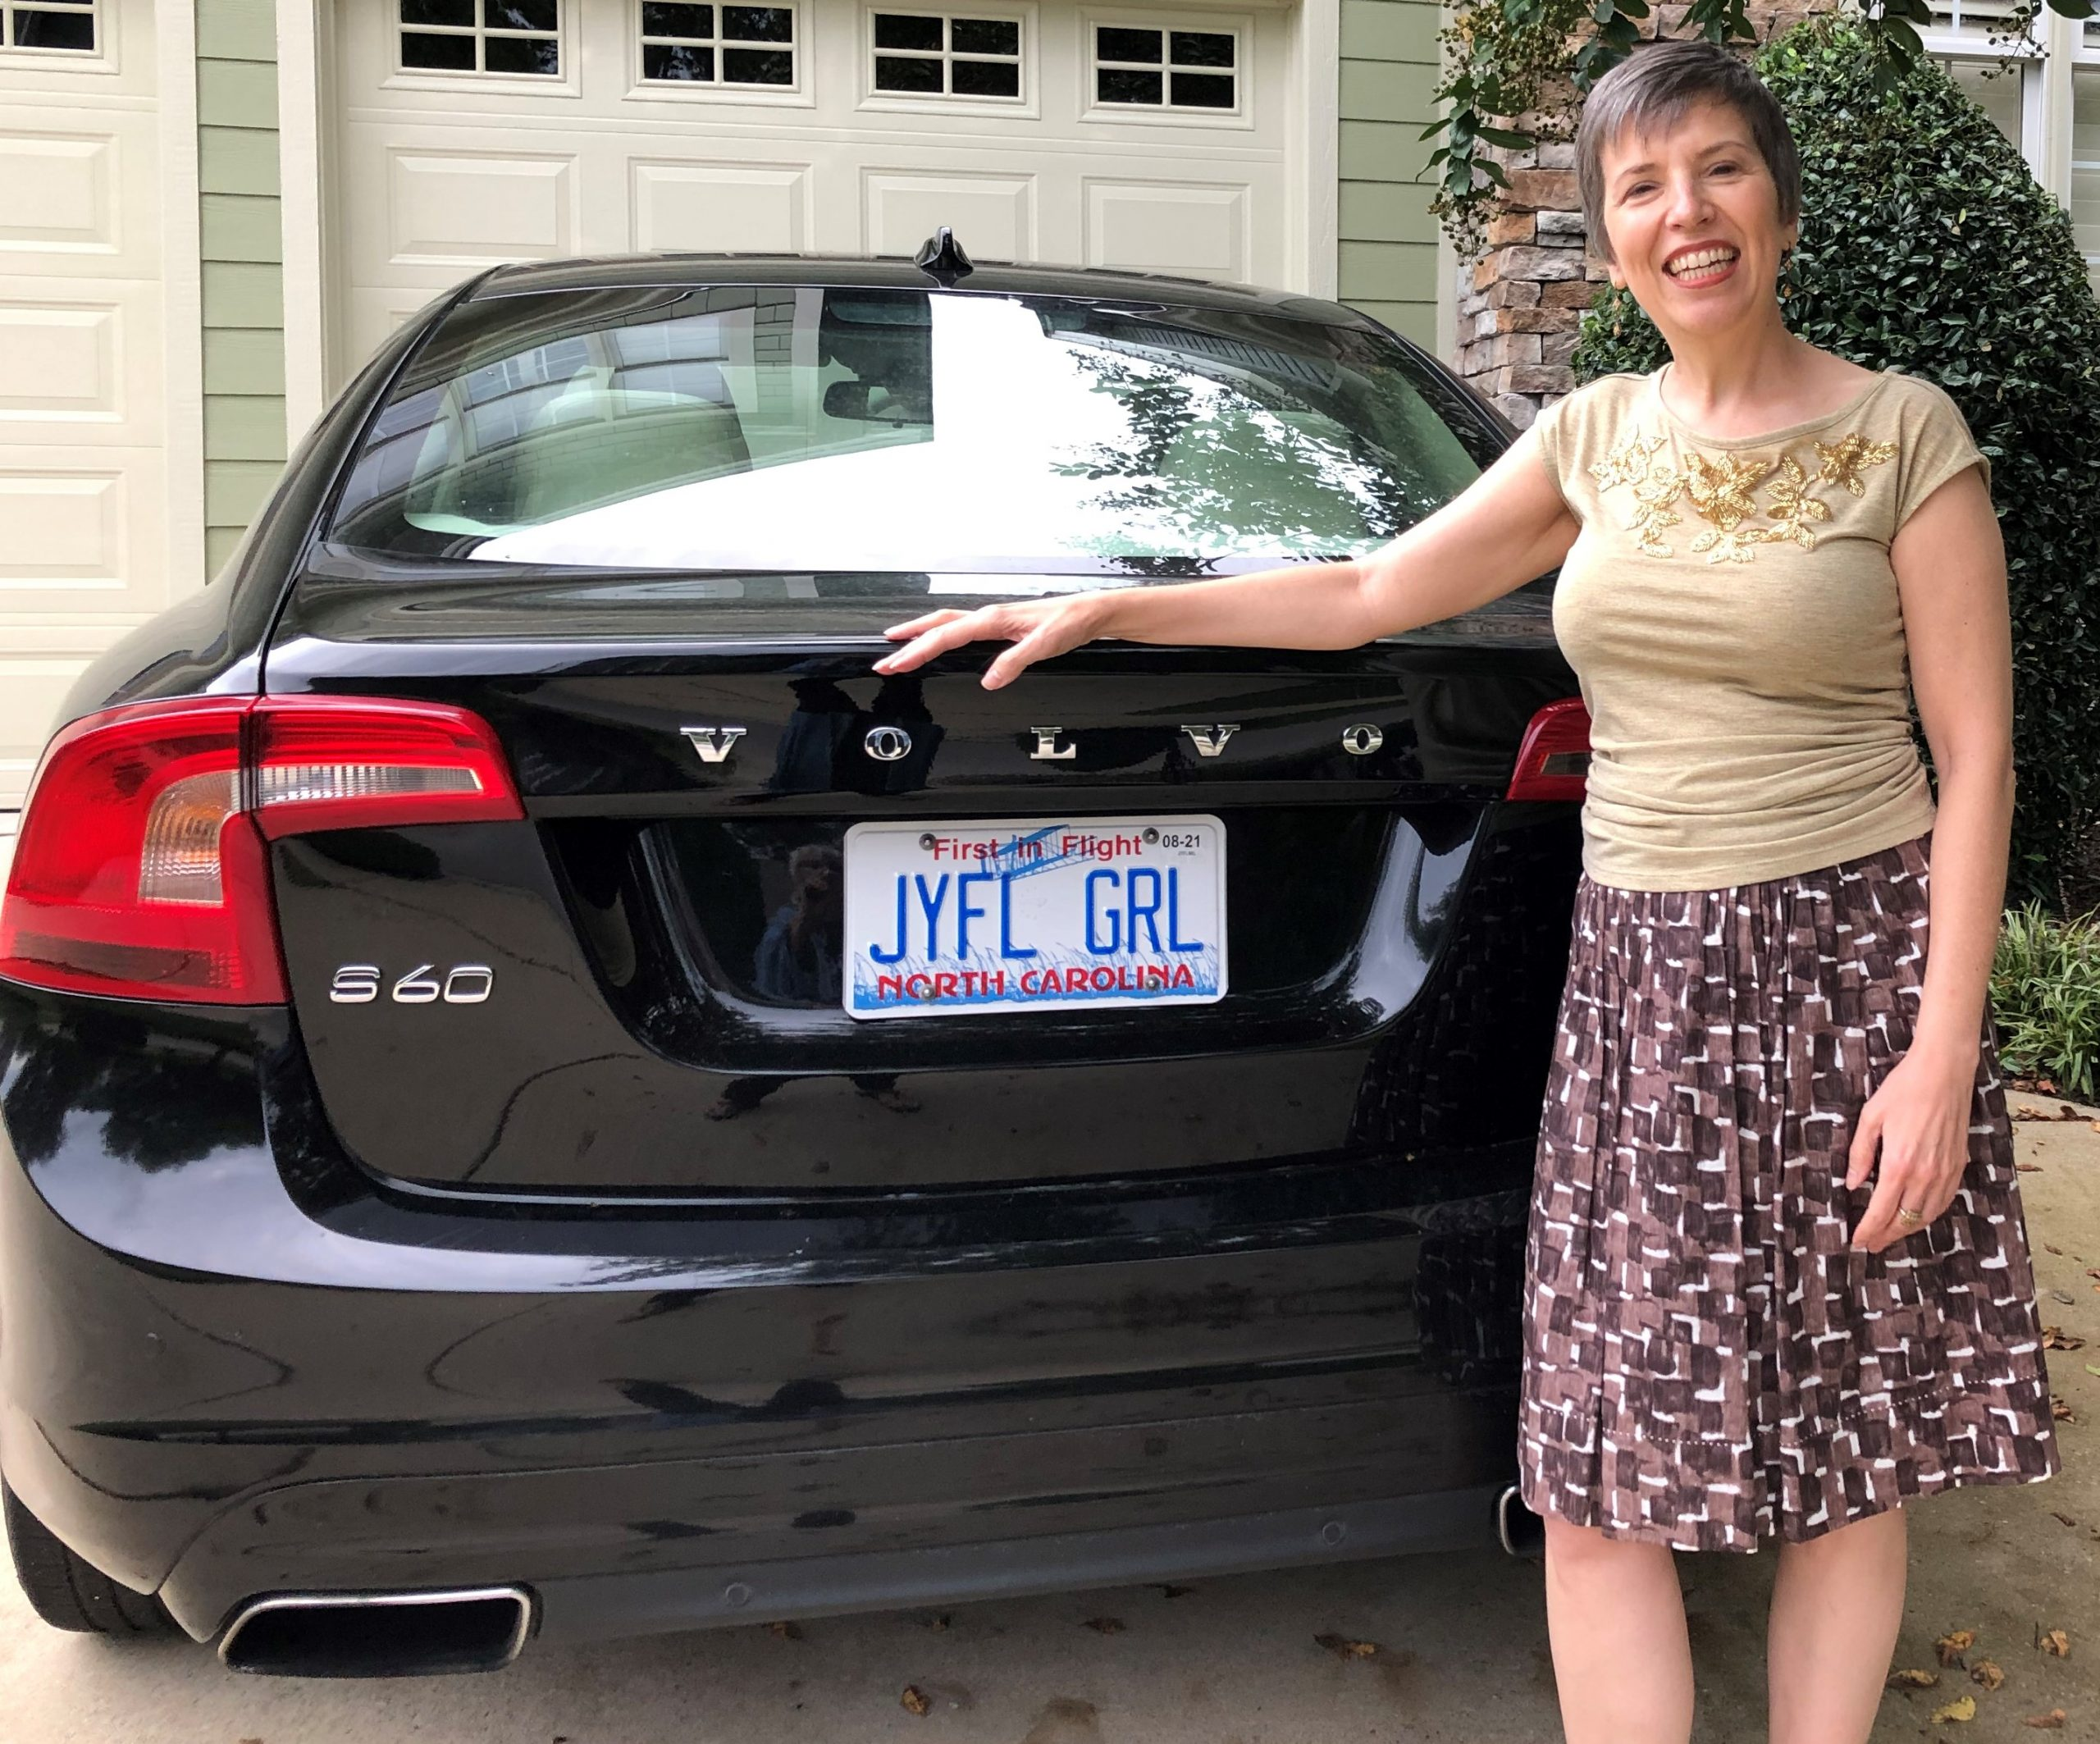 Marcy with Joyful Girl license plate